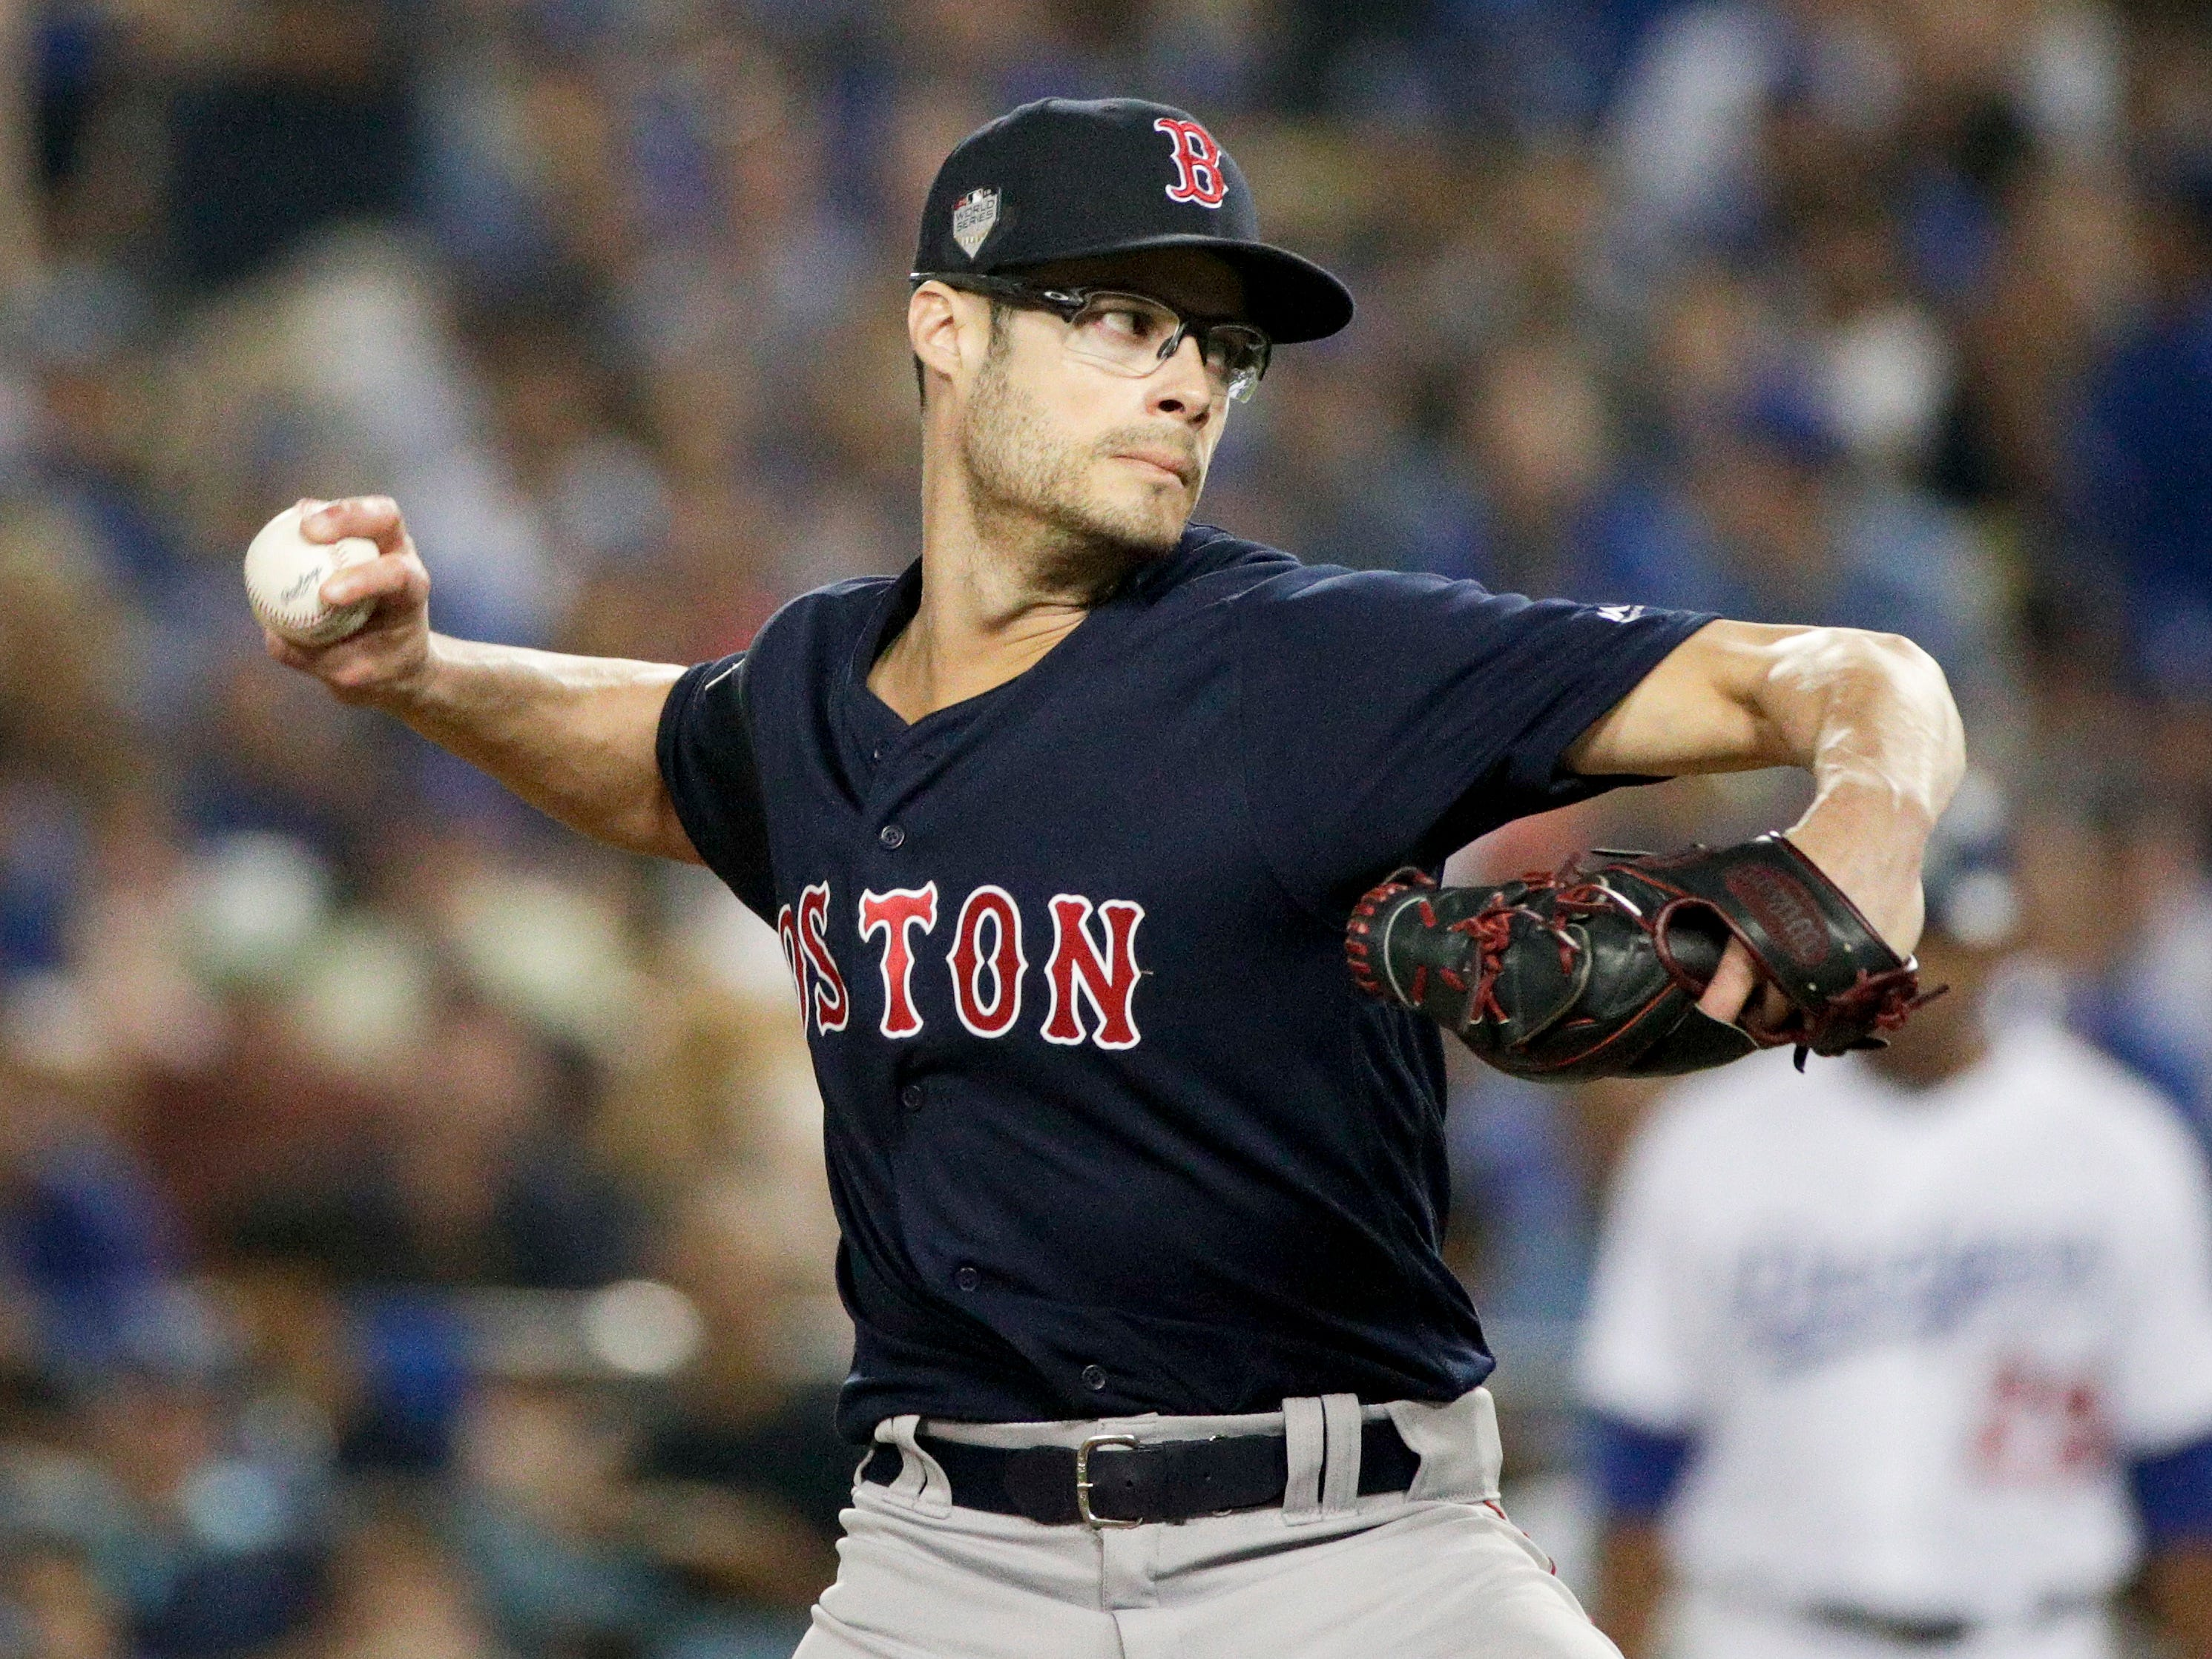 35. Joe Kelly, RP, 31: Like Nathan Eovaldi, another Red Sox right-hander whose excellent postseason performance will earn him some additional phone calls from GMs around the league. Prediction: Red Sox, three years, $18 million